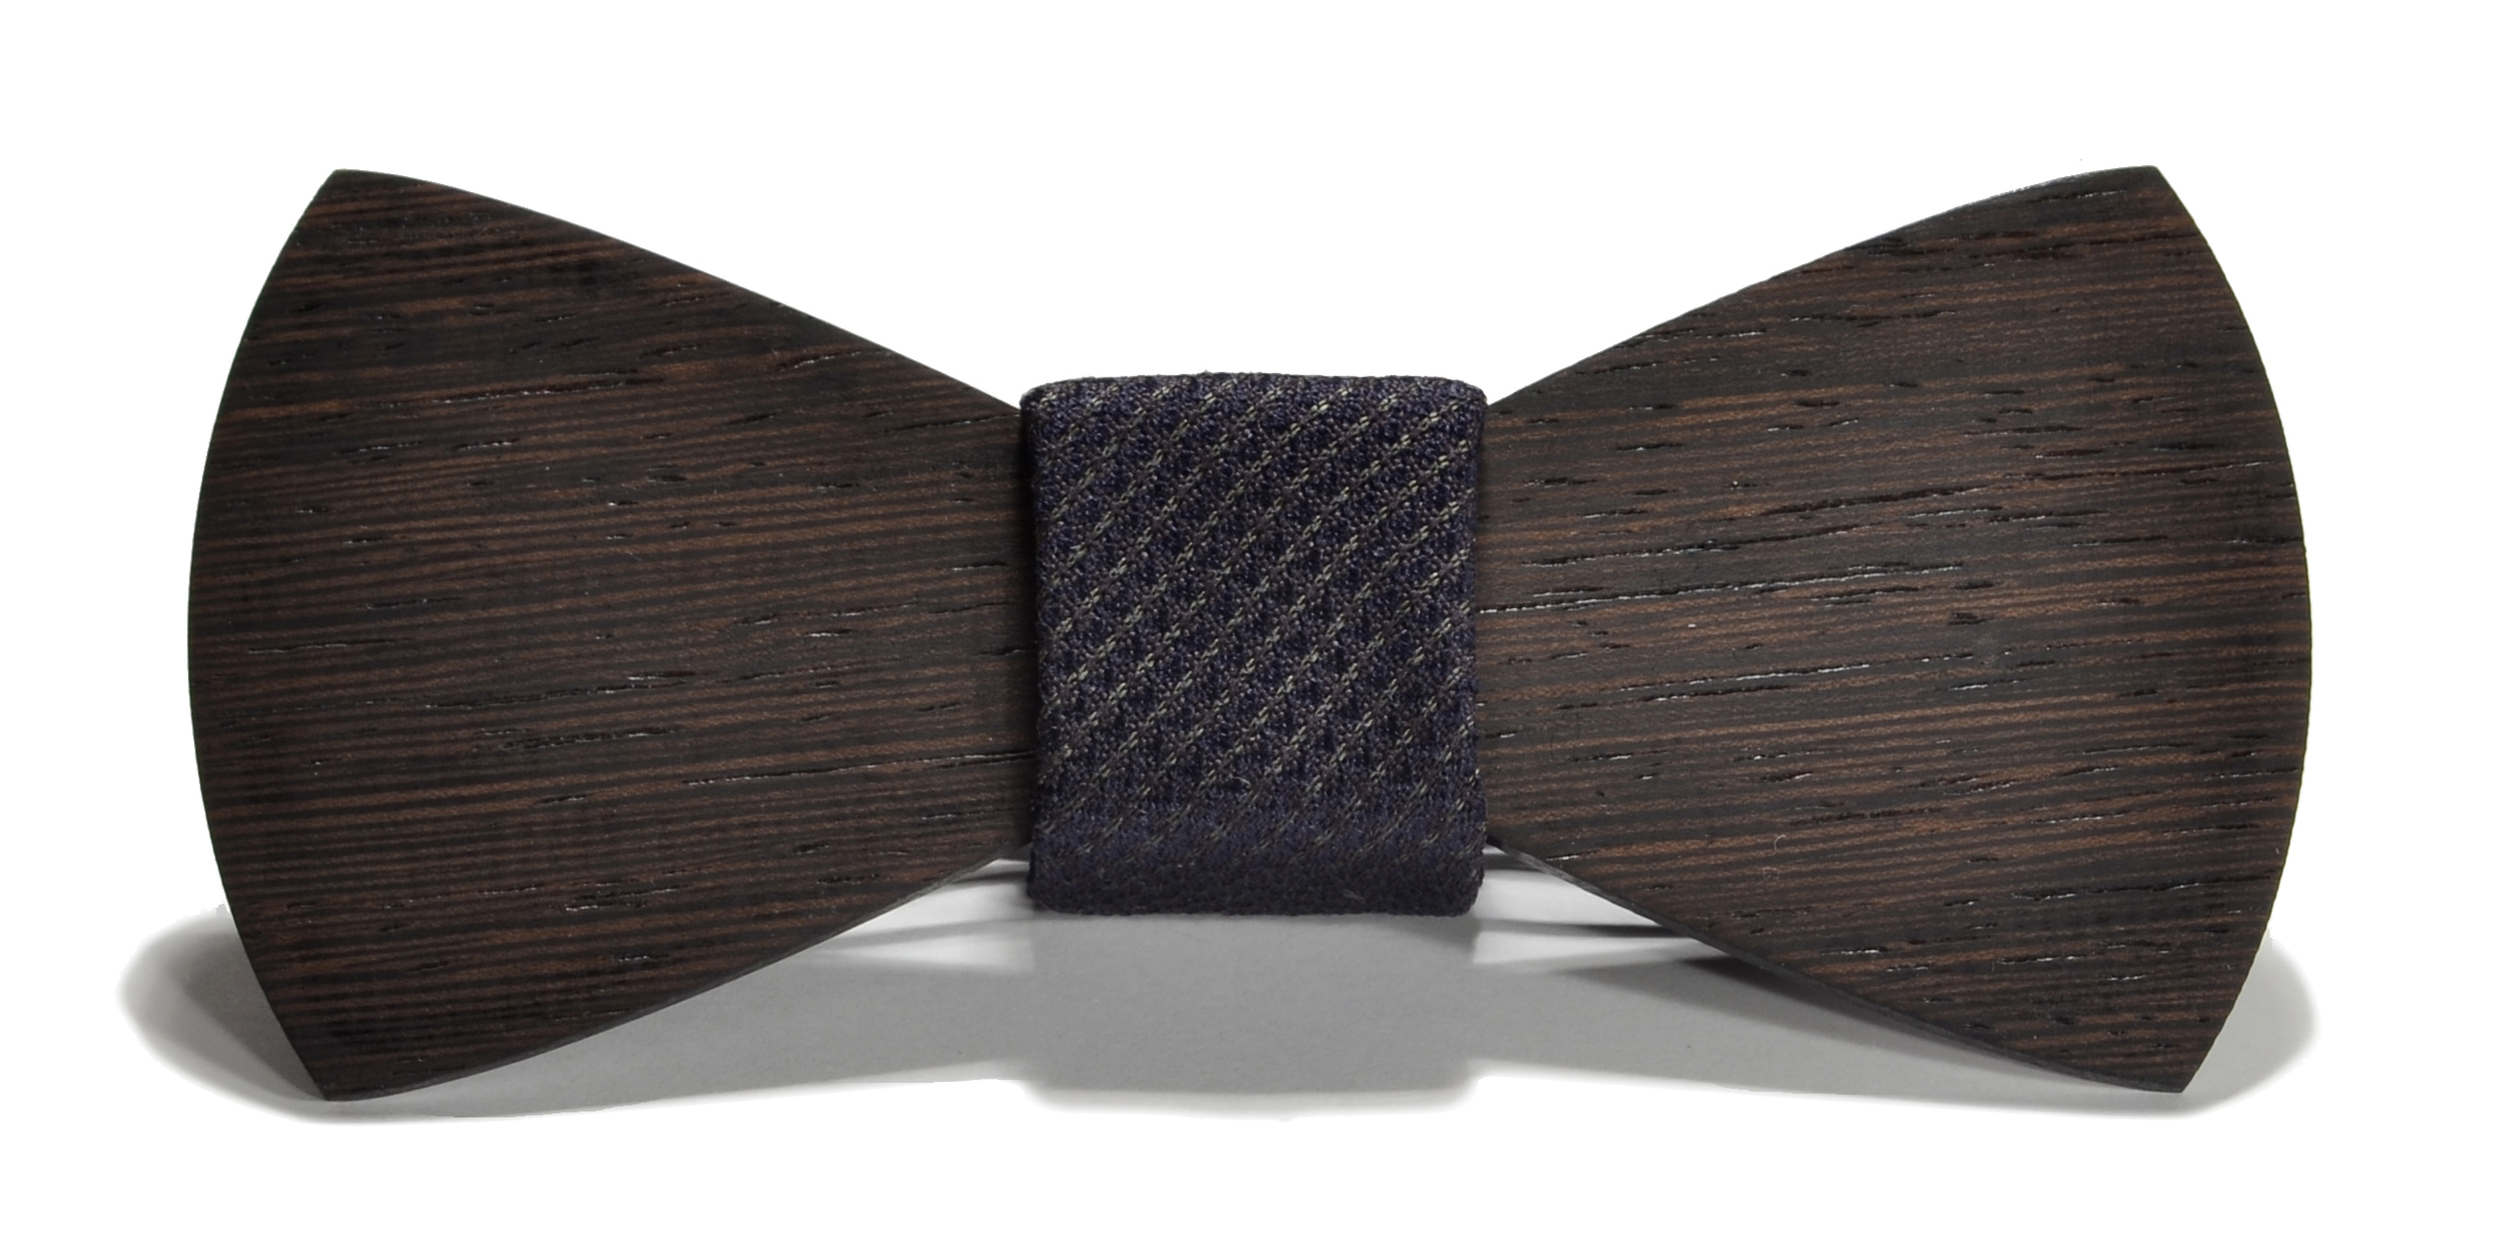 The Sinatra Wenge Traditional Silk Wooden Bow Tie